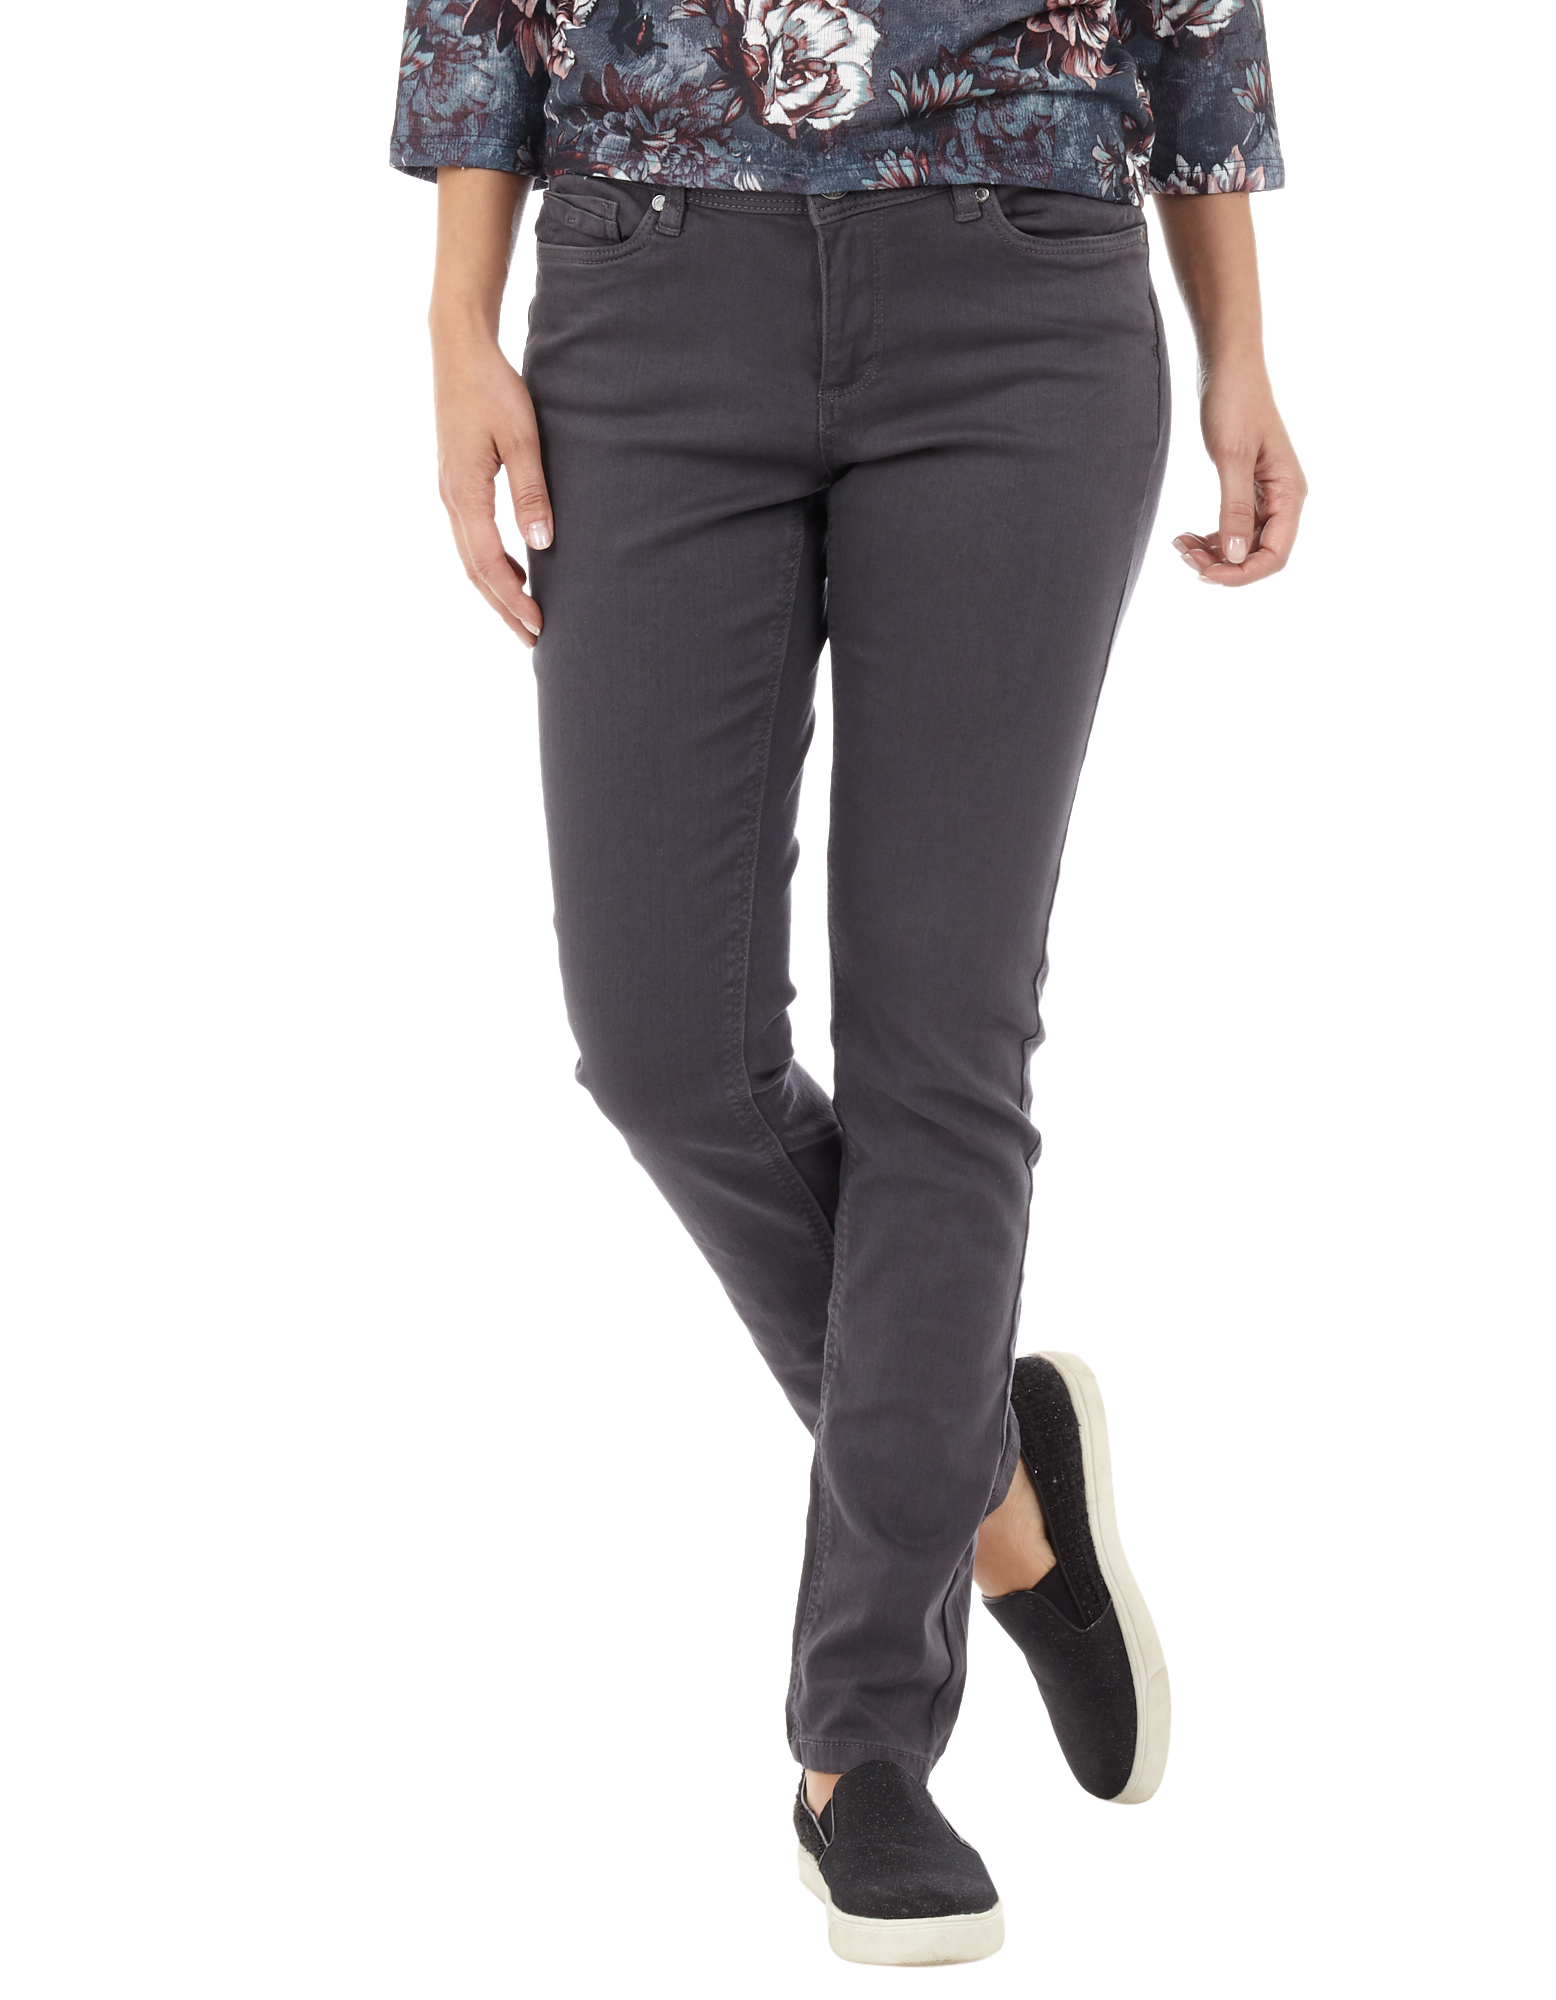 Damen Slim Fit Jeans aus Coloured Denim bunt,mehrfarbig,rot | 81552651720400